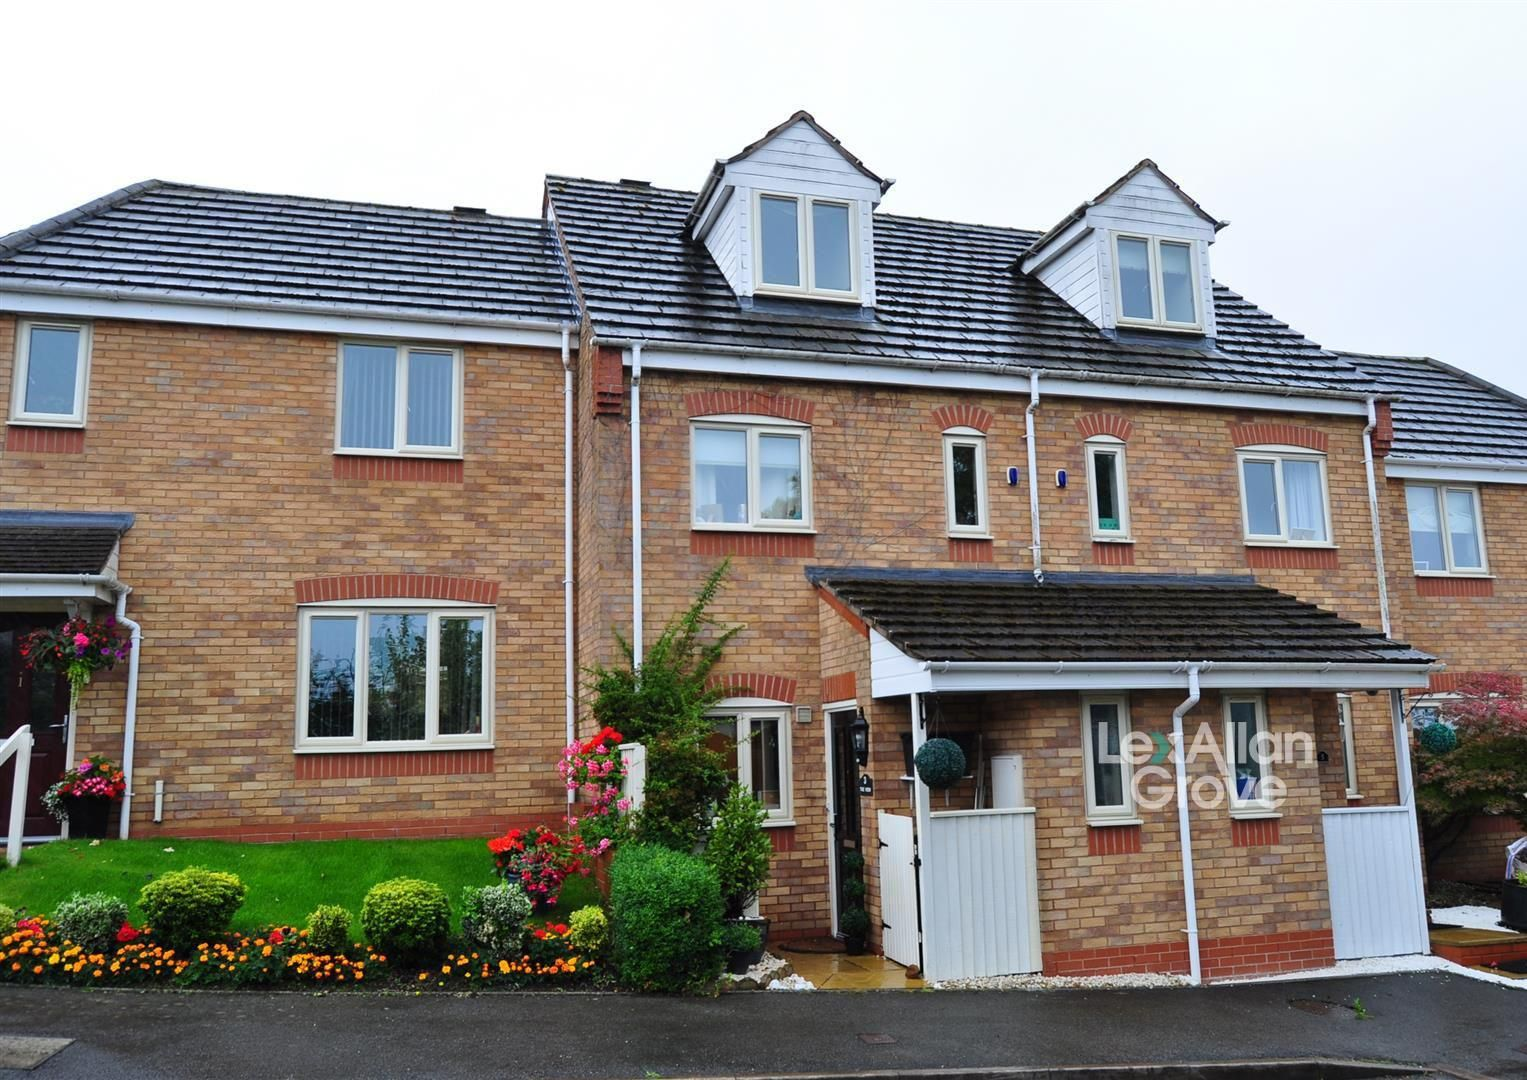 3 bed town-house for sale, B63